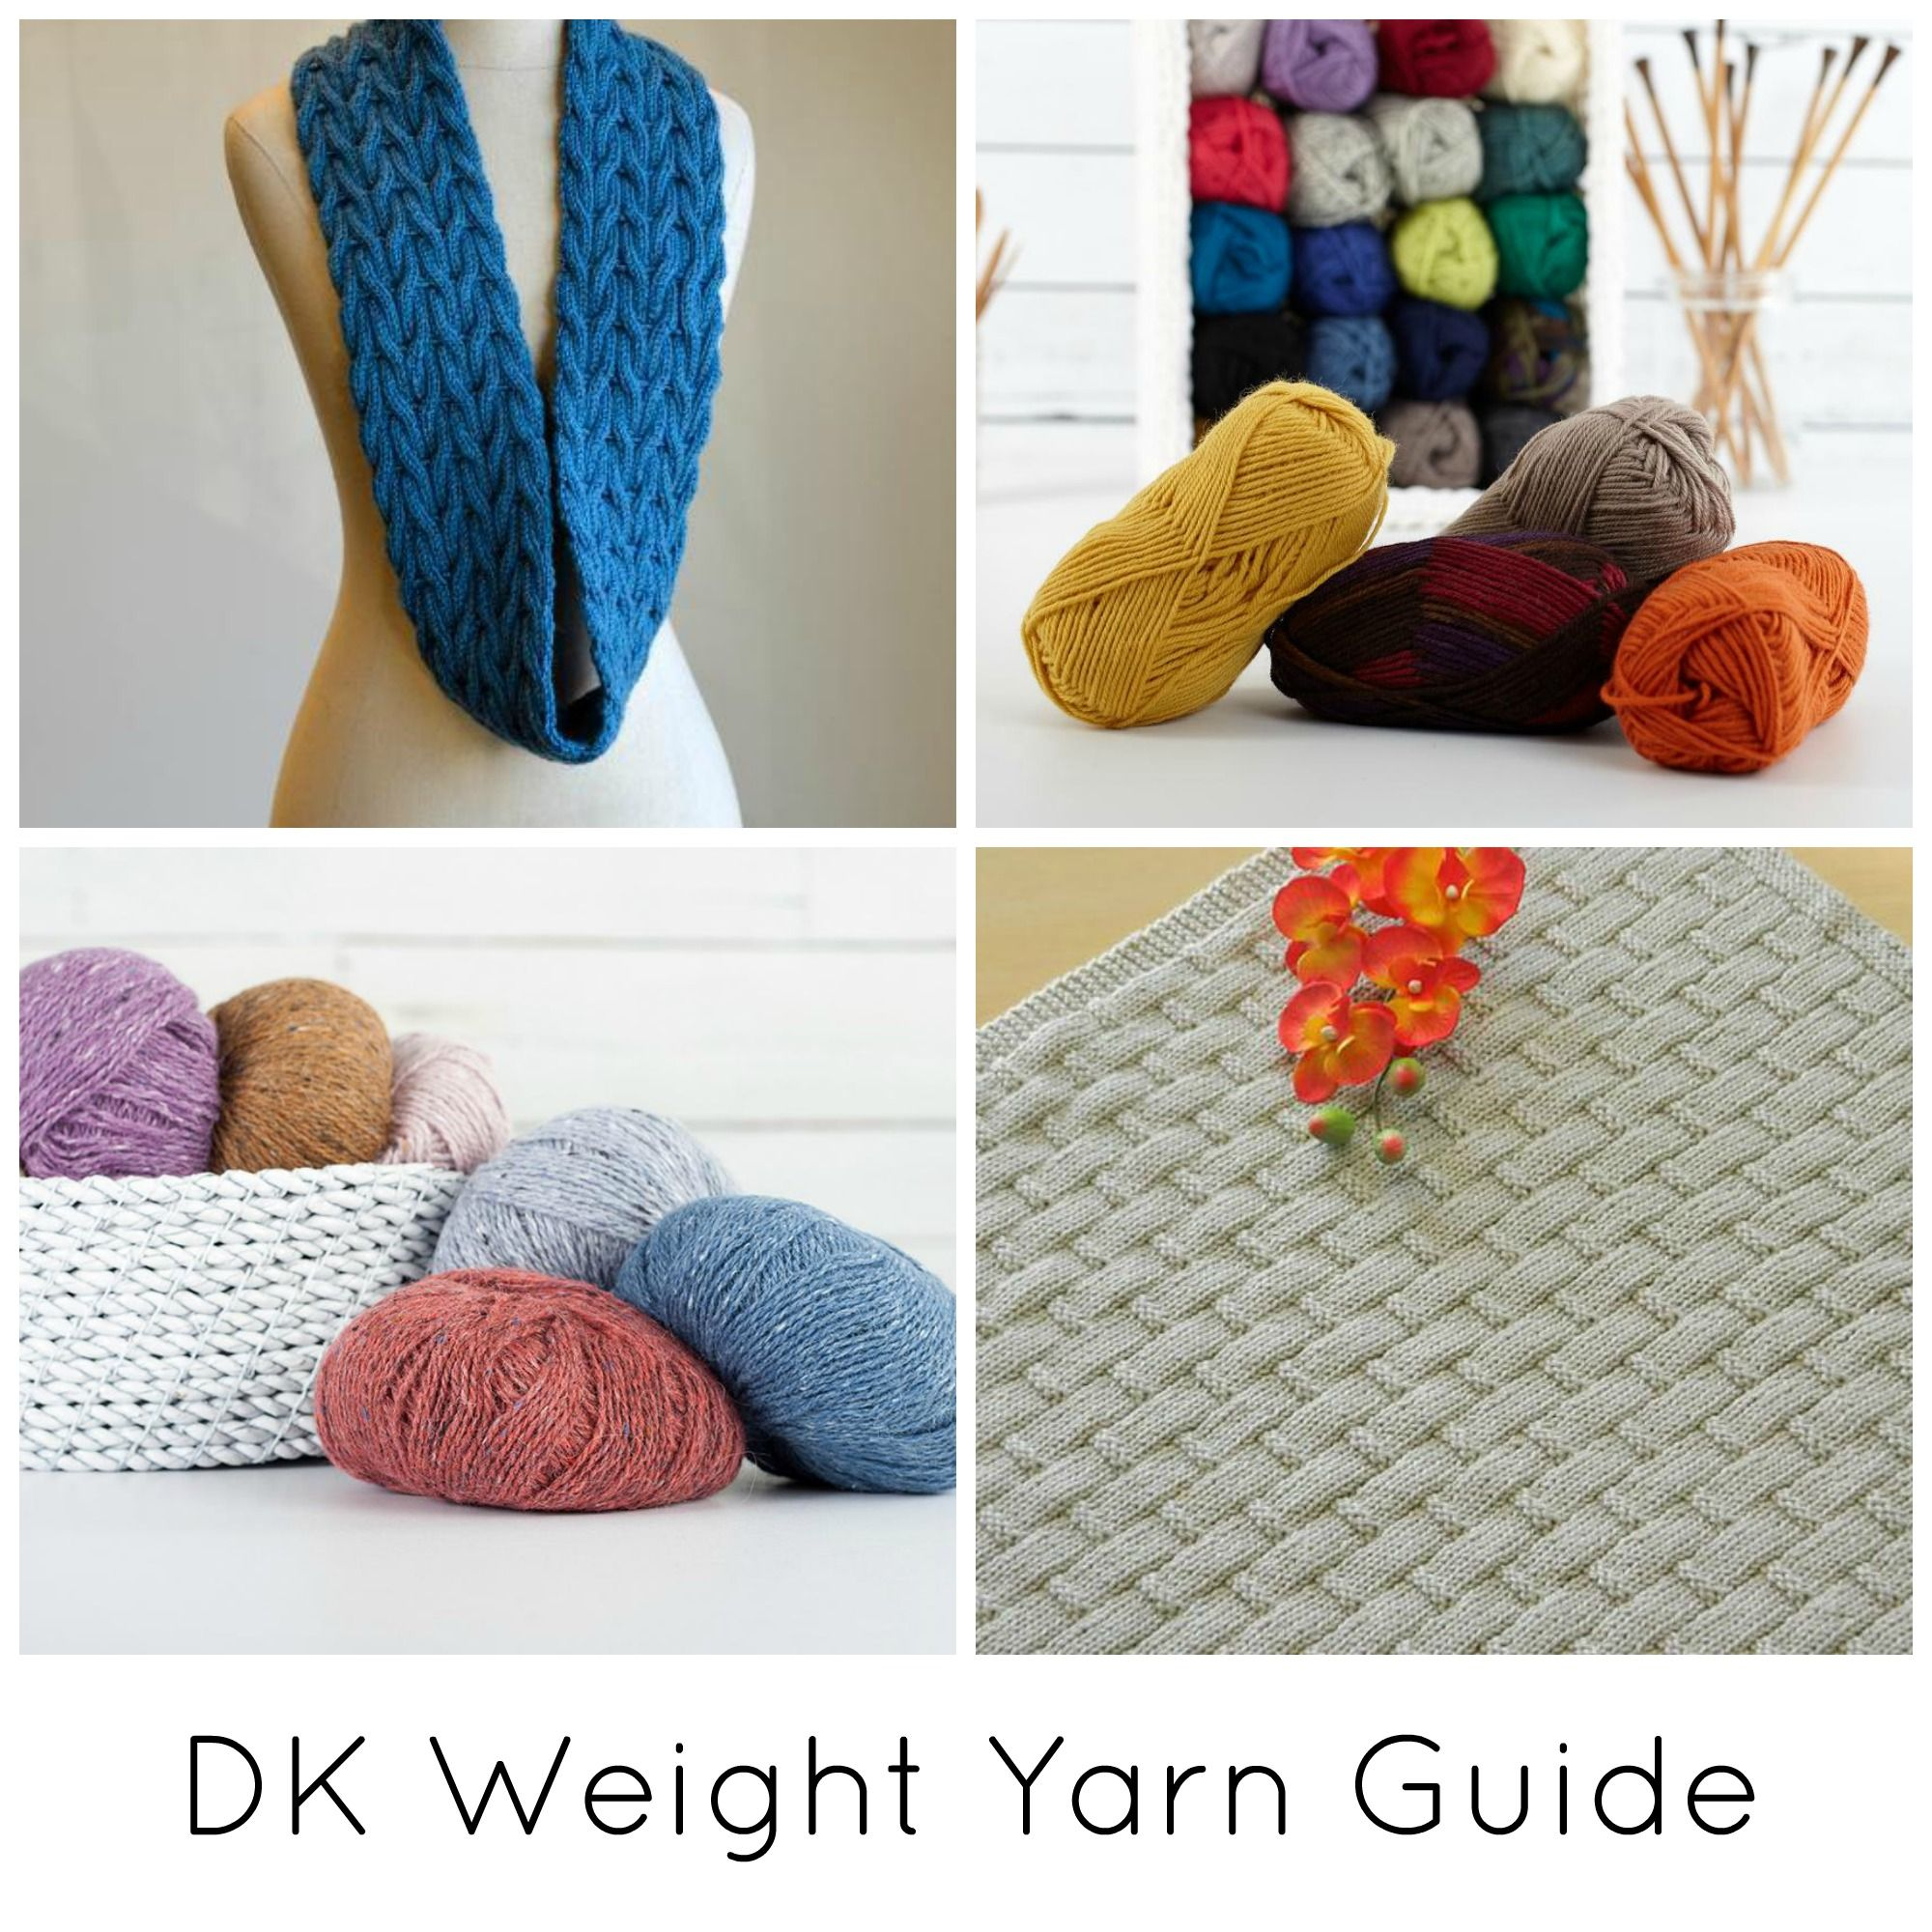 What Is DK Weight Yarn, Exactly?